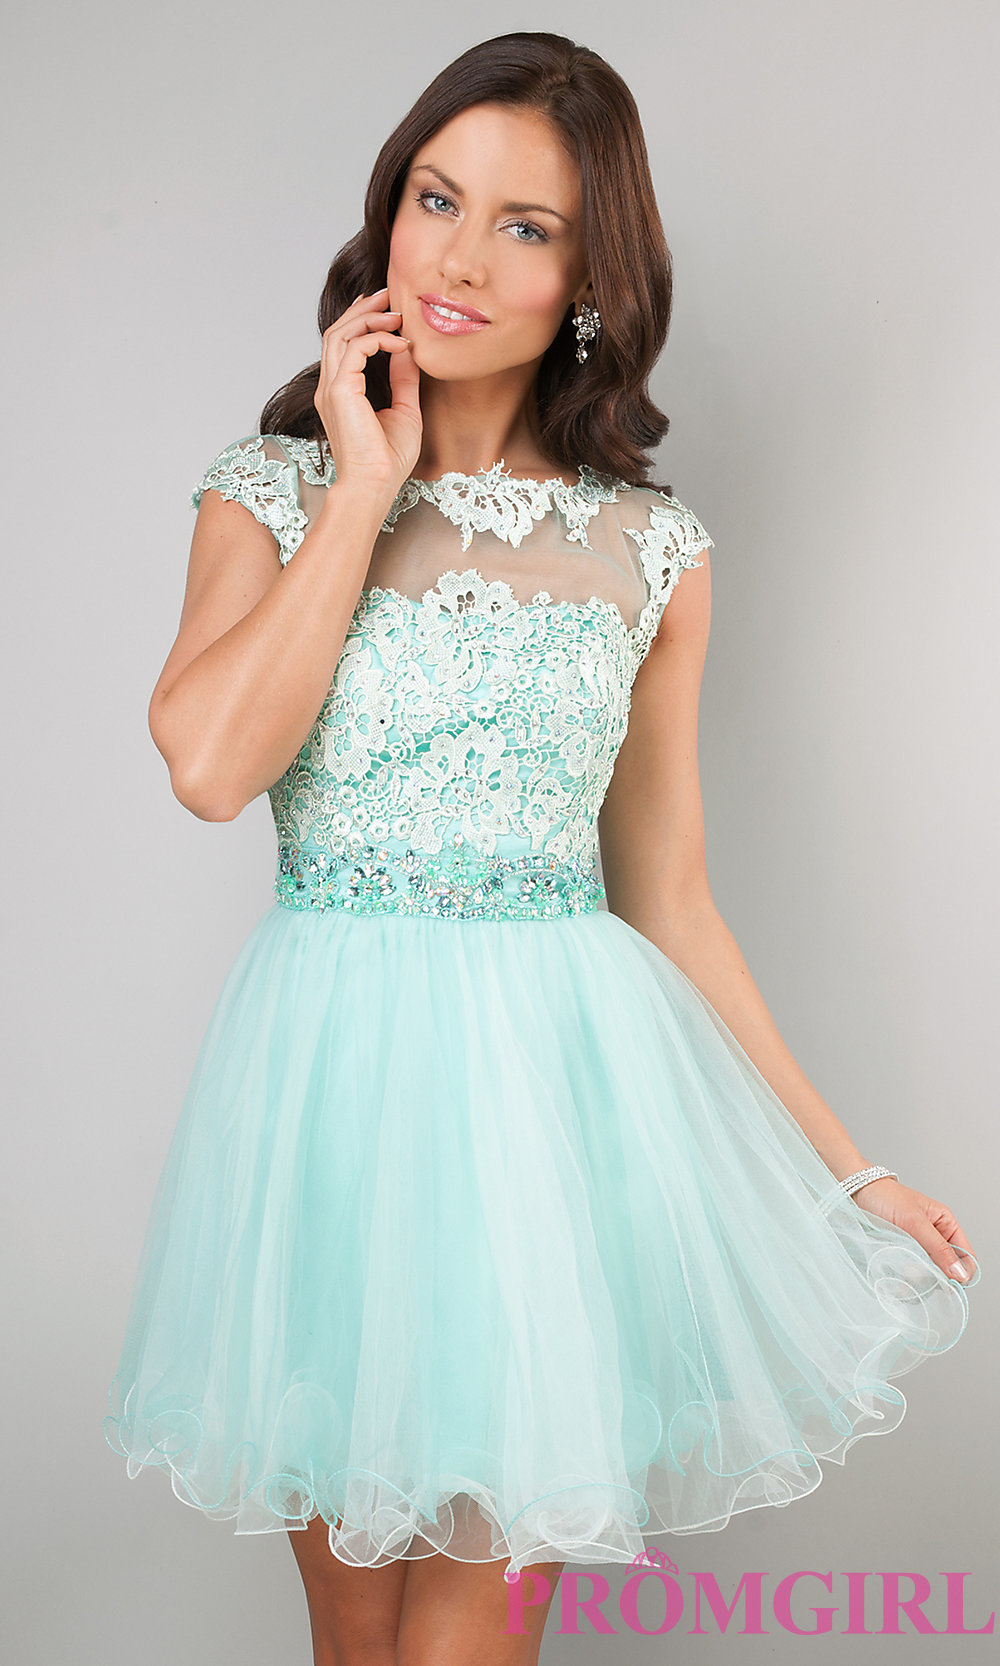 Short Prom Dress hover to zoom OYZRFIN